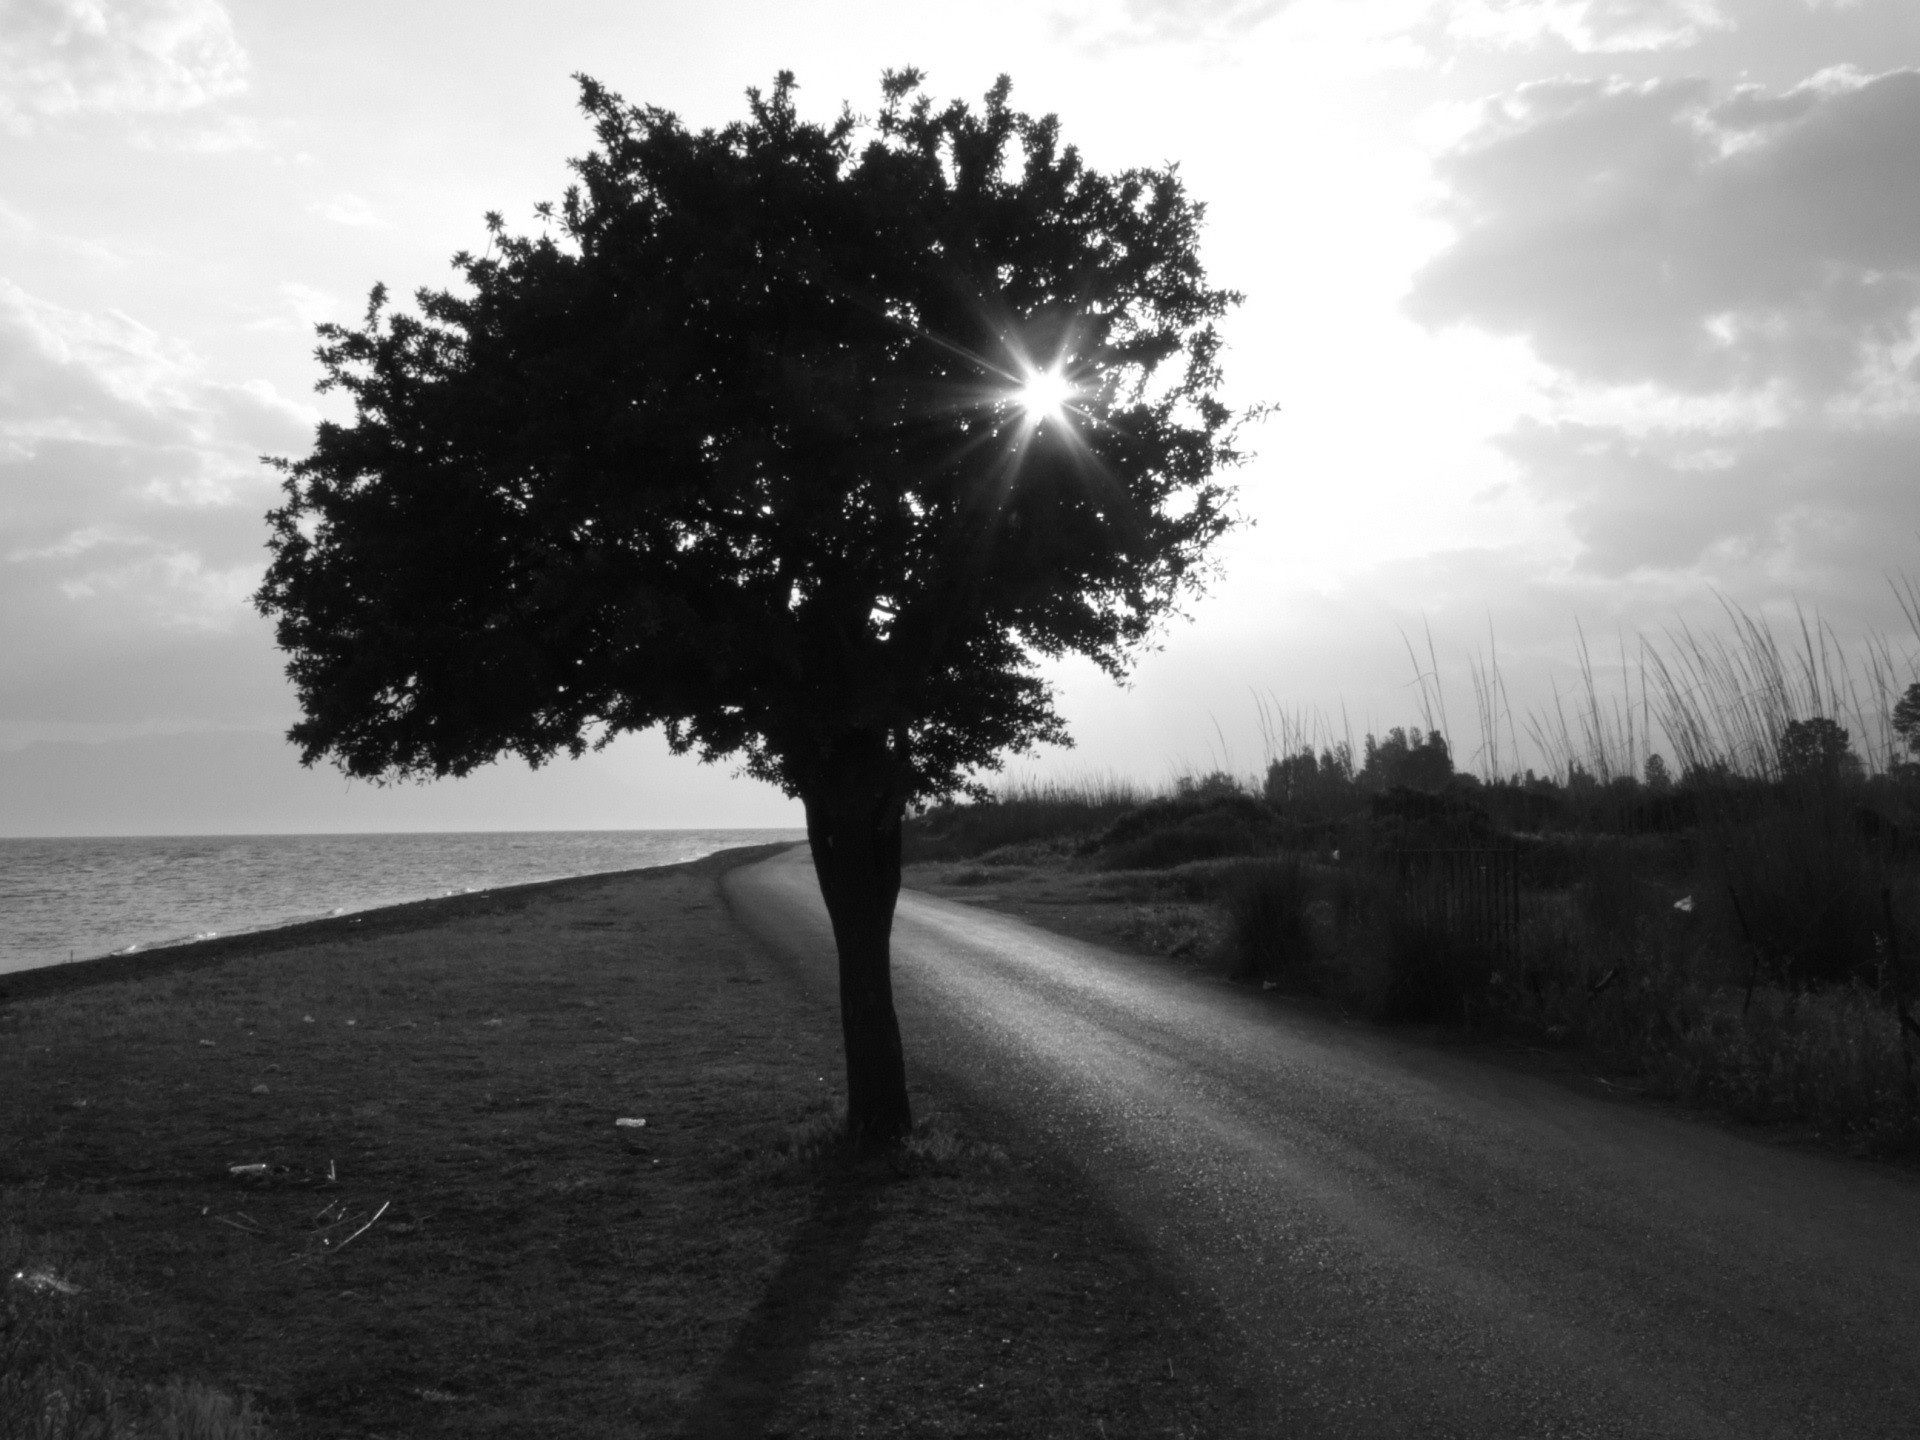 Cool Tree Black And White: Tree By The Ocean Black And White Photo Wallpaper